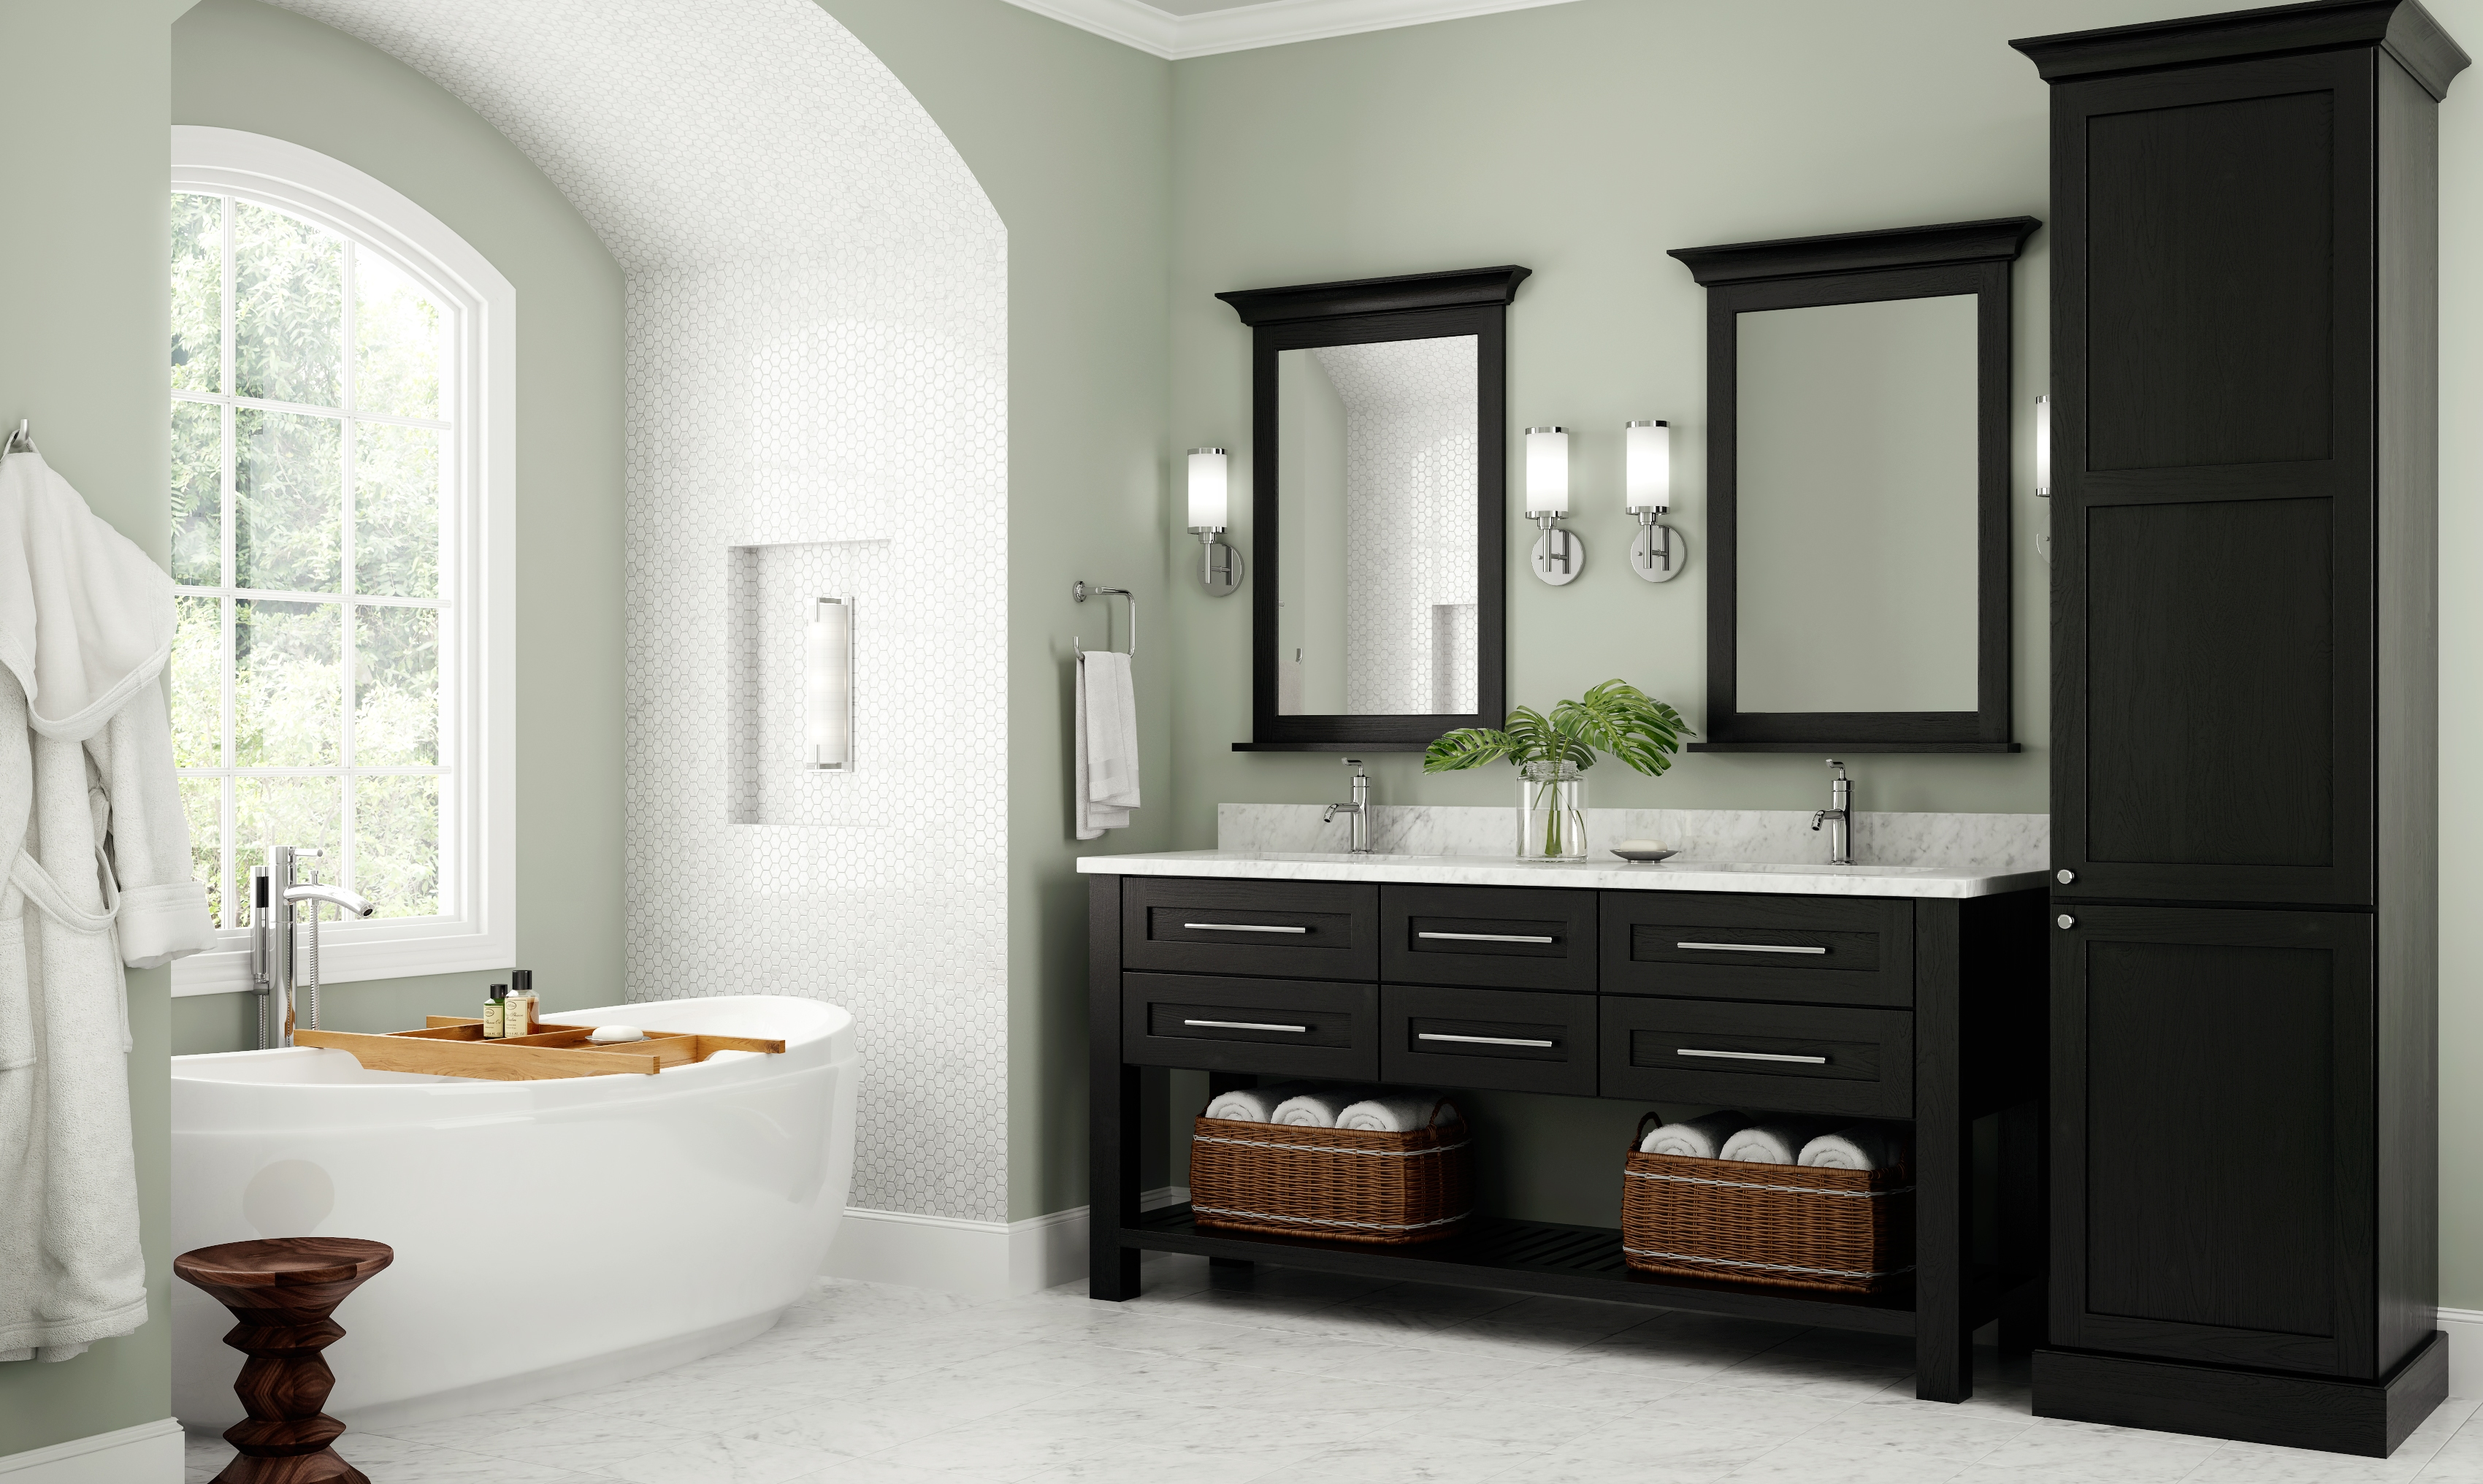 Home Addition Remodel Age In Place Cary NC Raleigh NC - Raleigh bathroom remodeling contractor